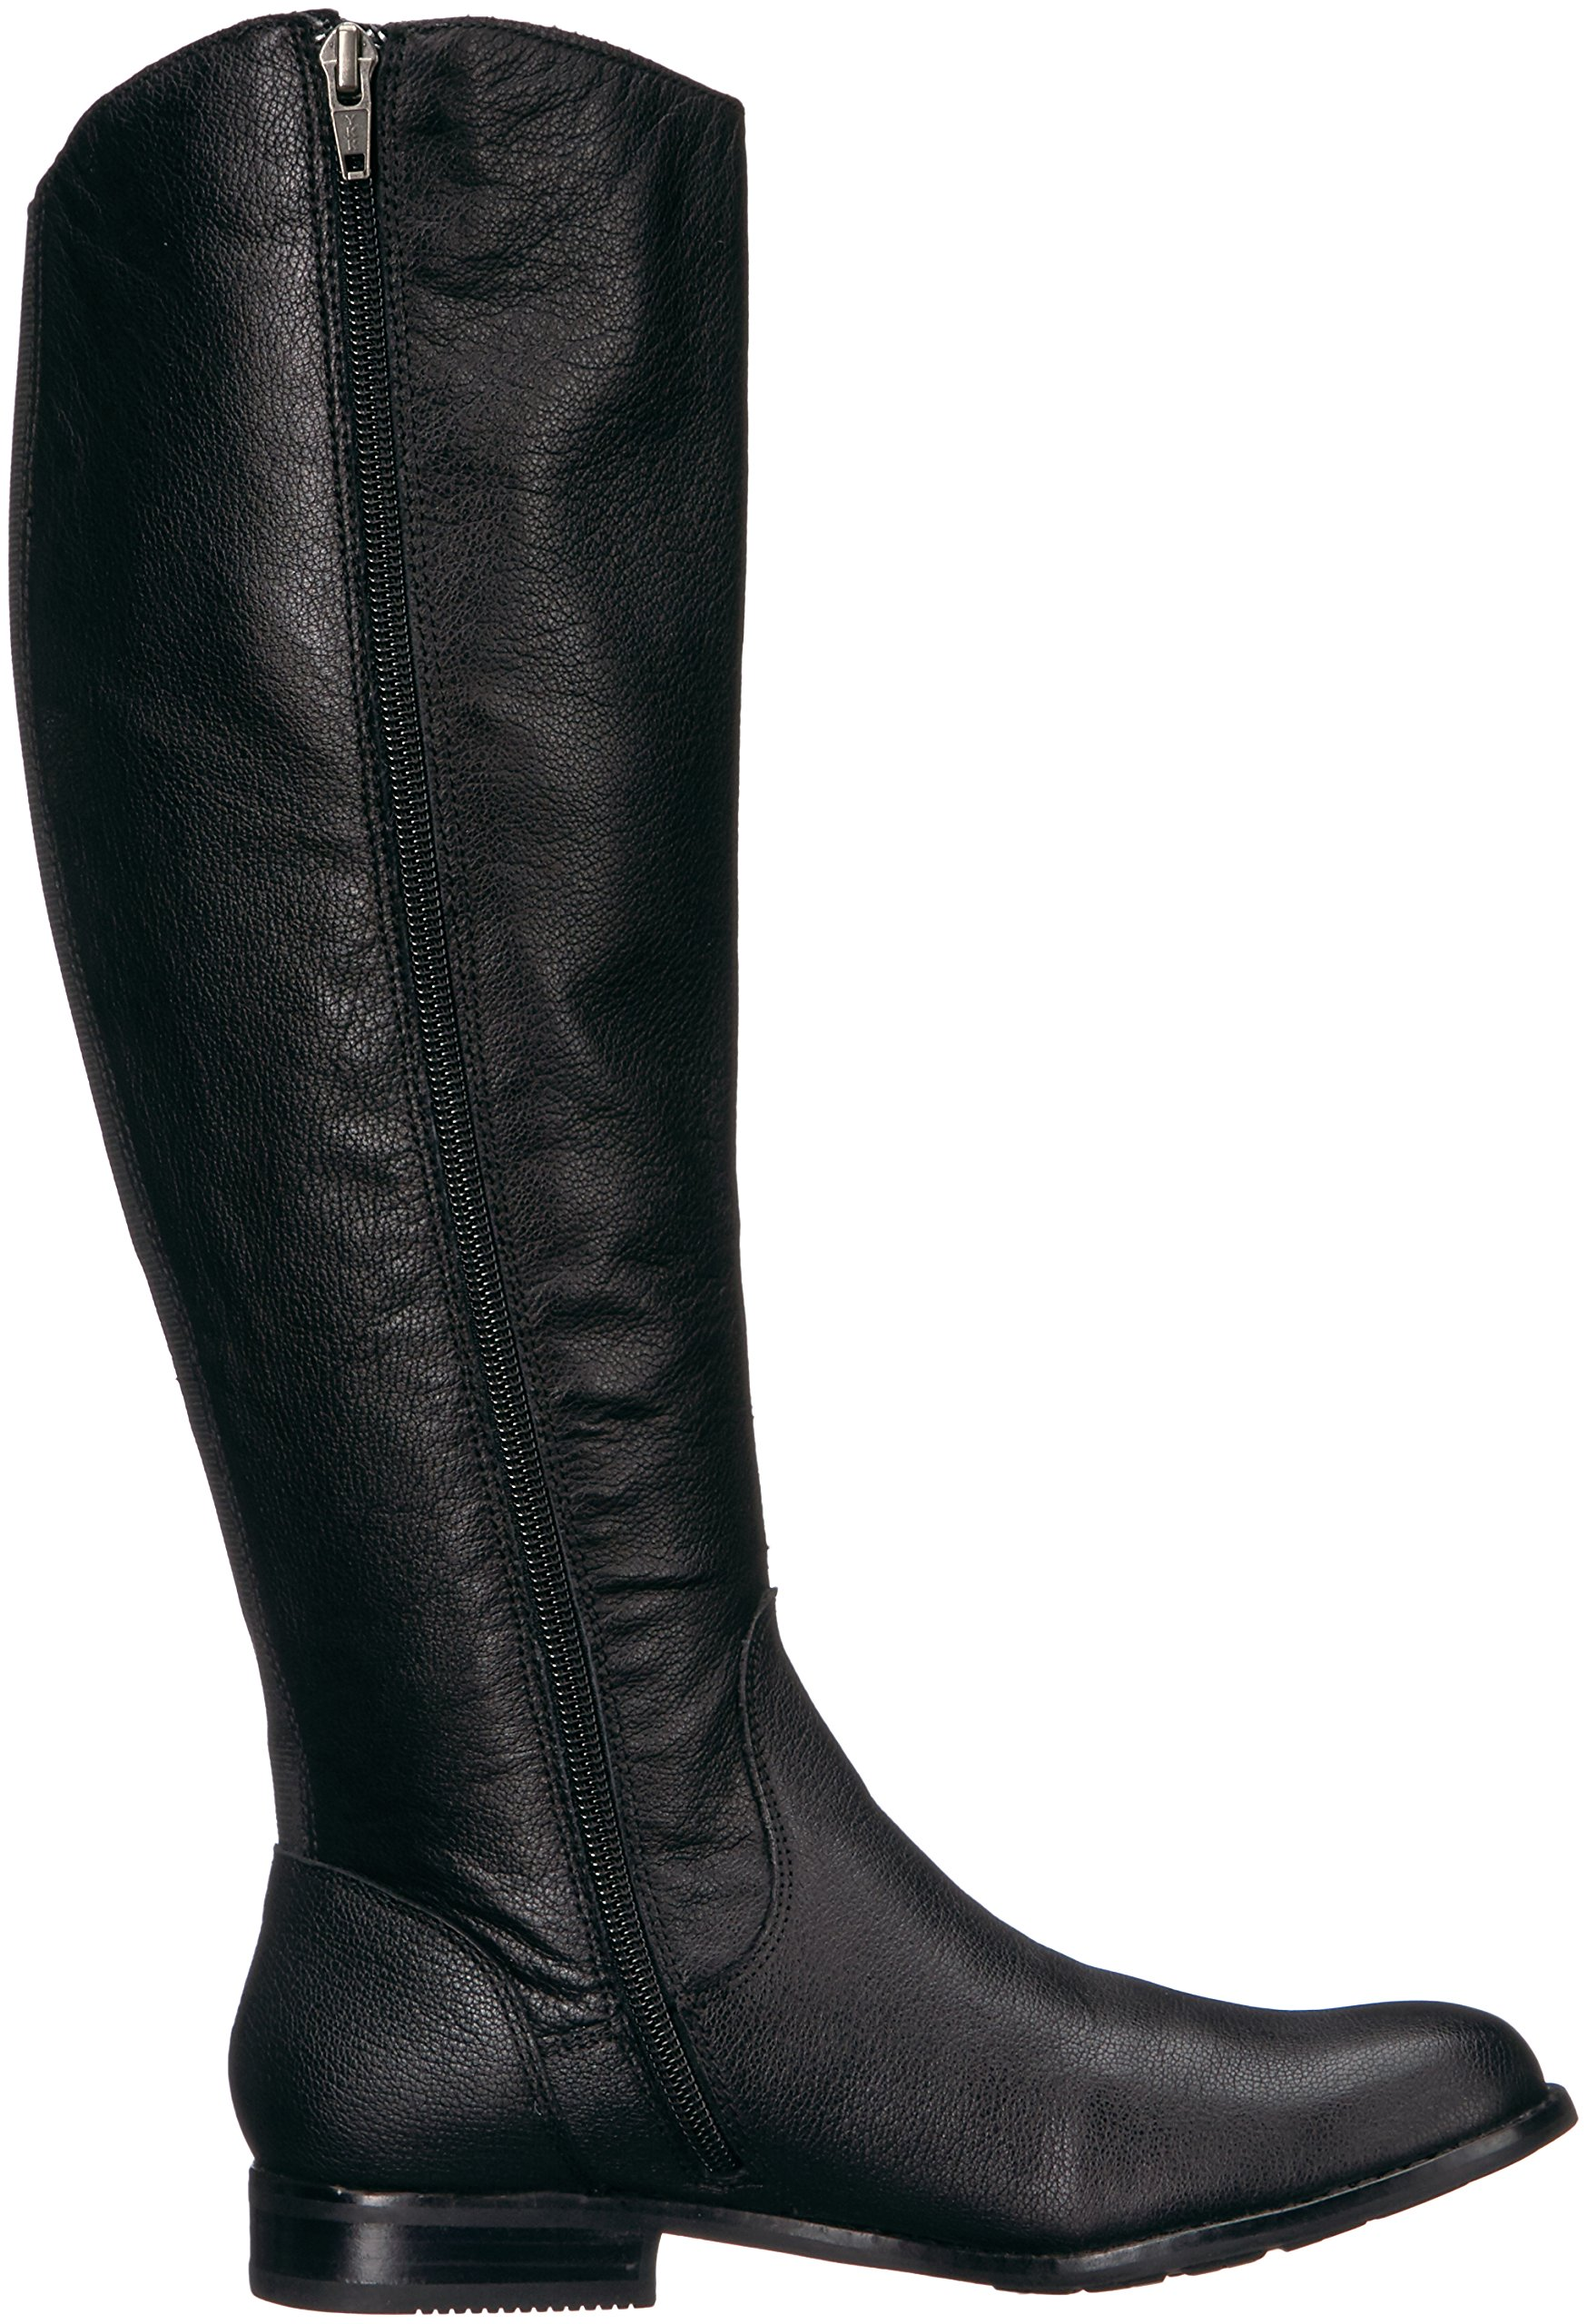 206 Collective Women's Whidbey Riding Boot, Black, 6.5 B US by 206 Collective (Image #7)